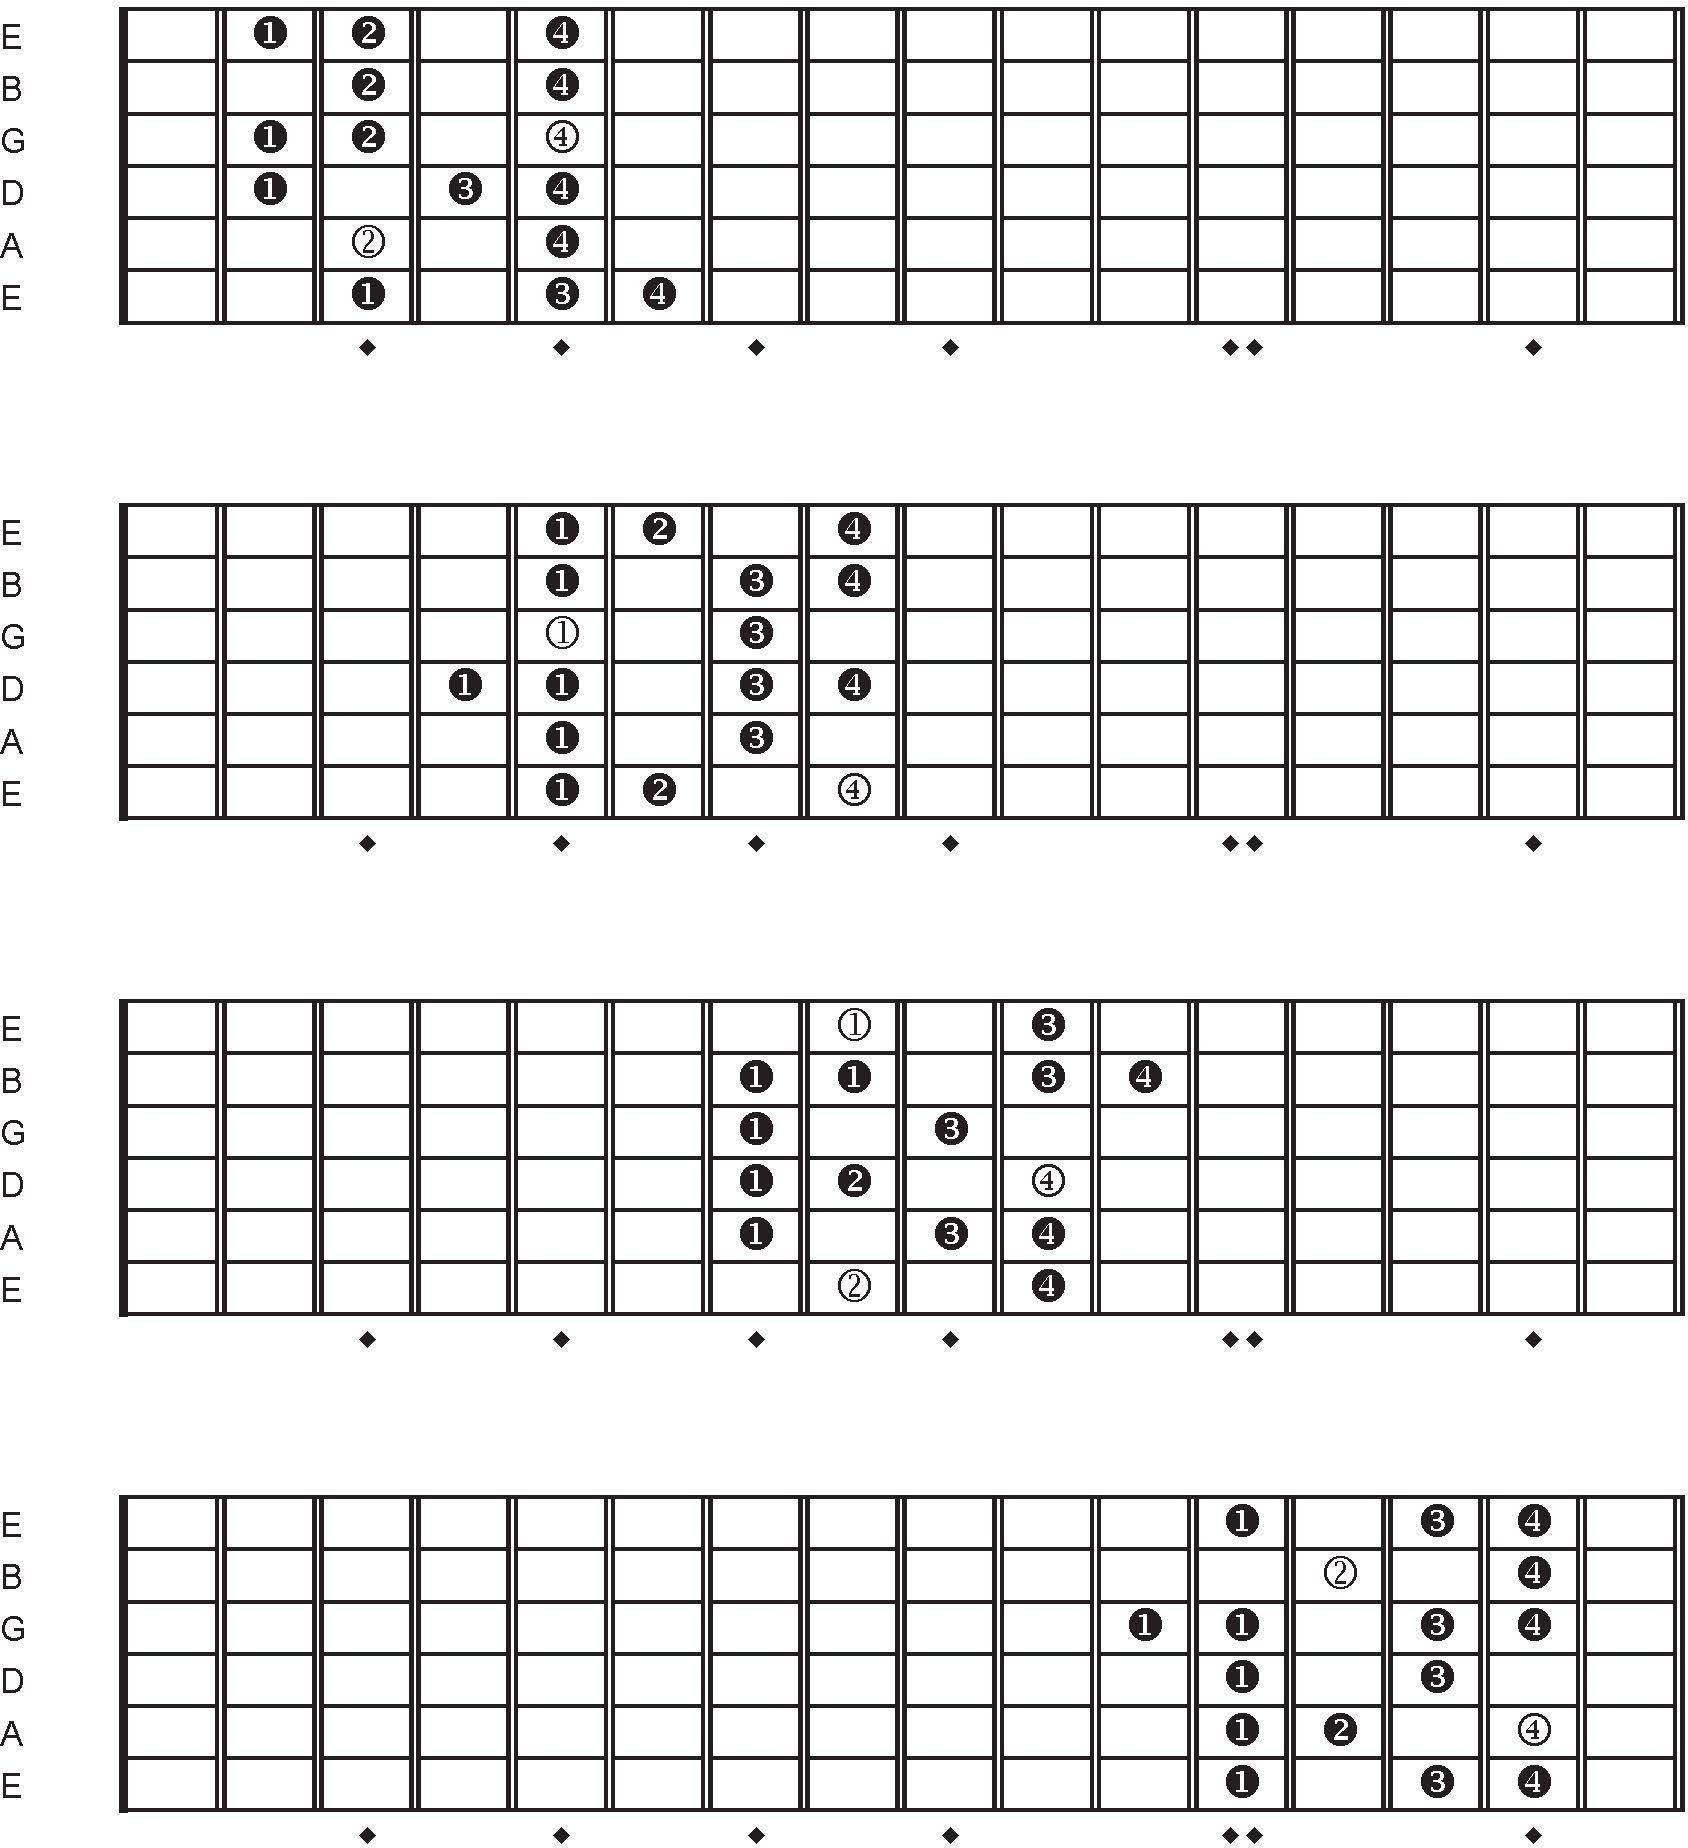 guitar scales tabs the mixolydian 4 scale in all twelve keys by marc schonbrun guitar scales. Black Bedroom Furniture Sets. Home Design Ideas